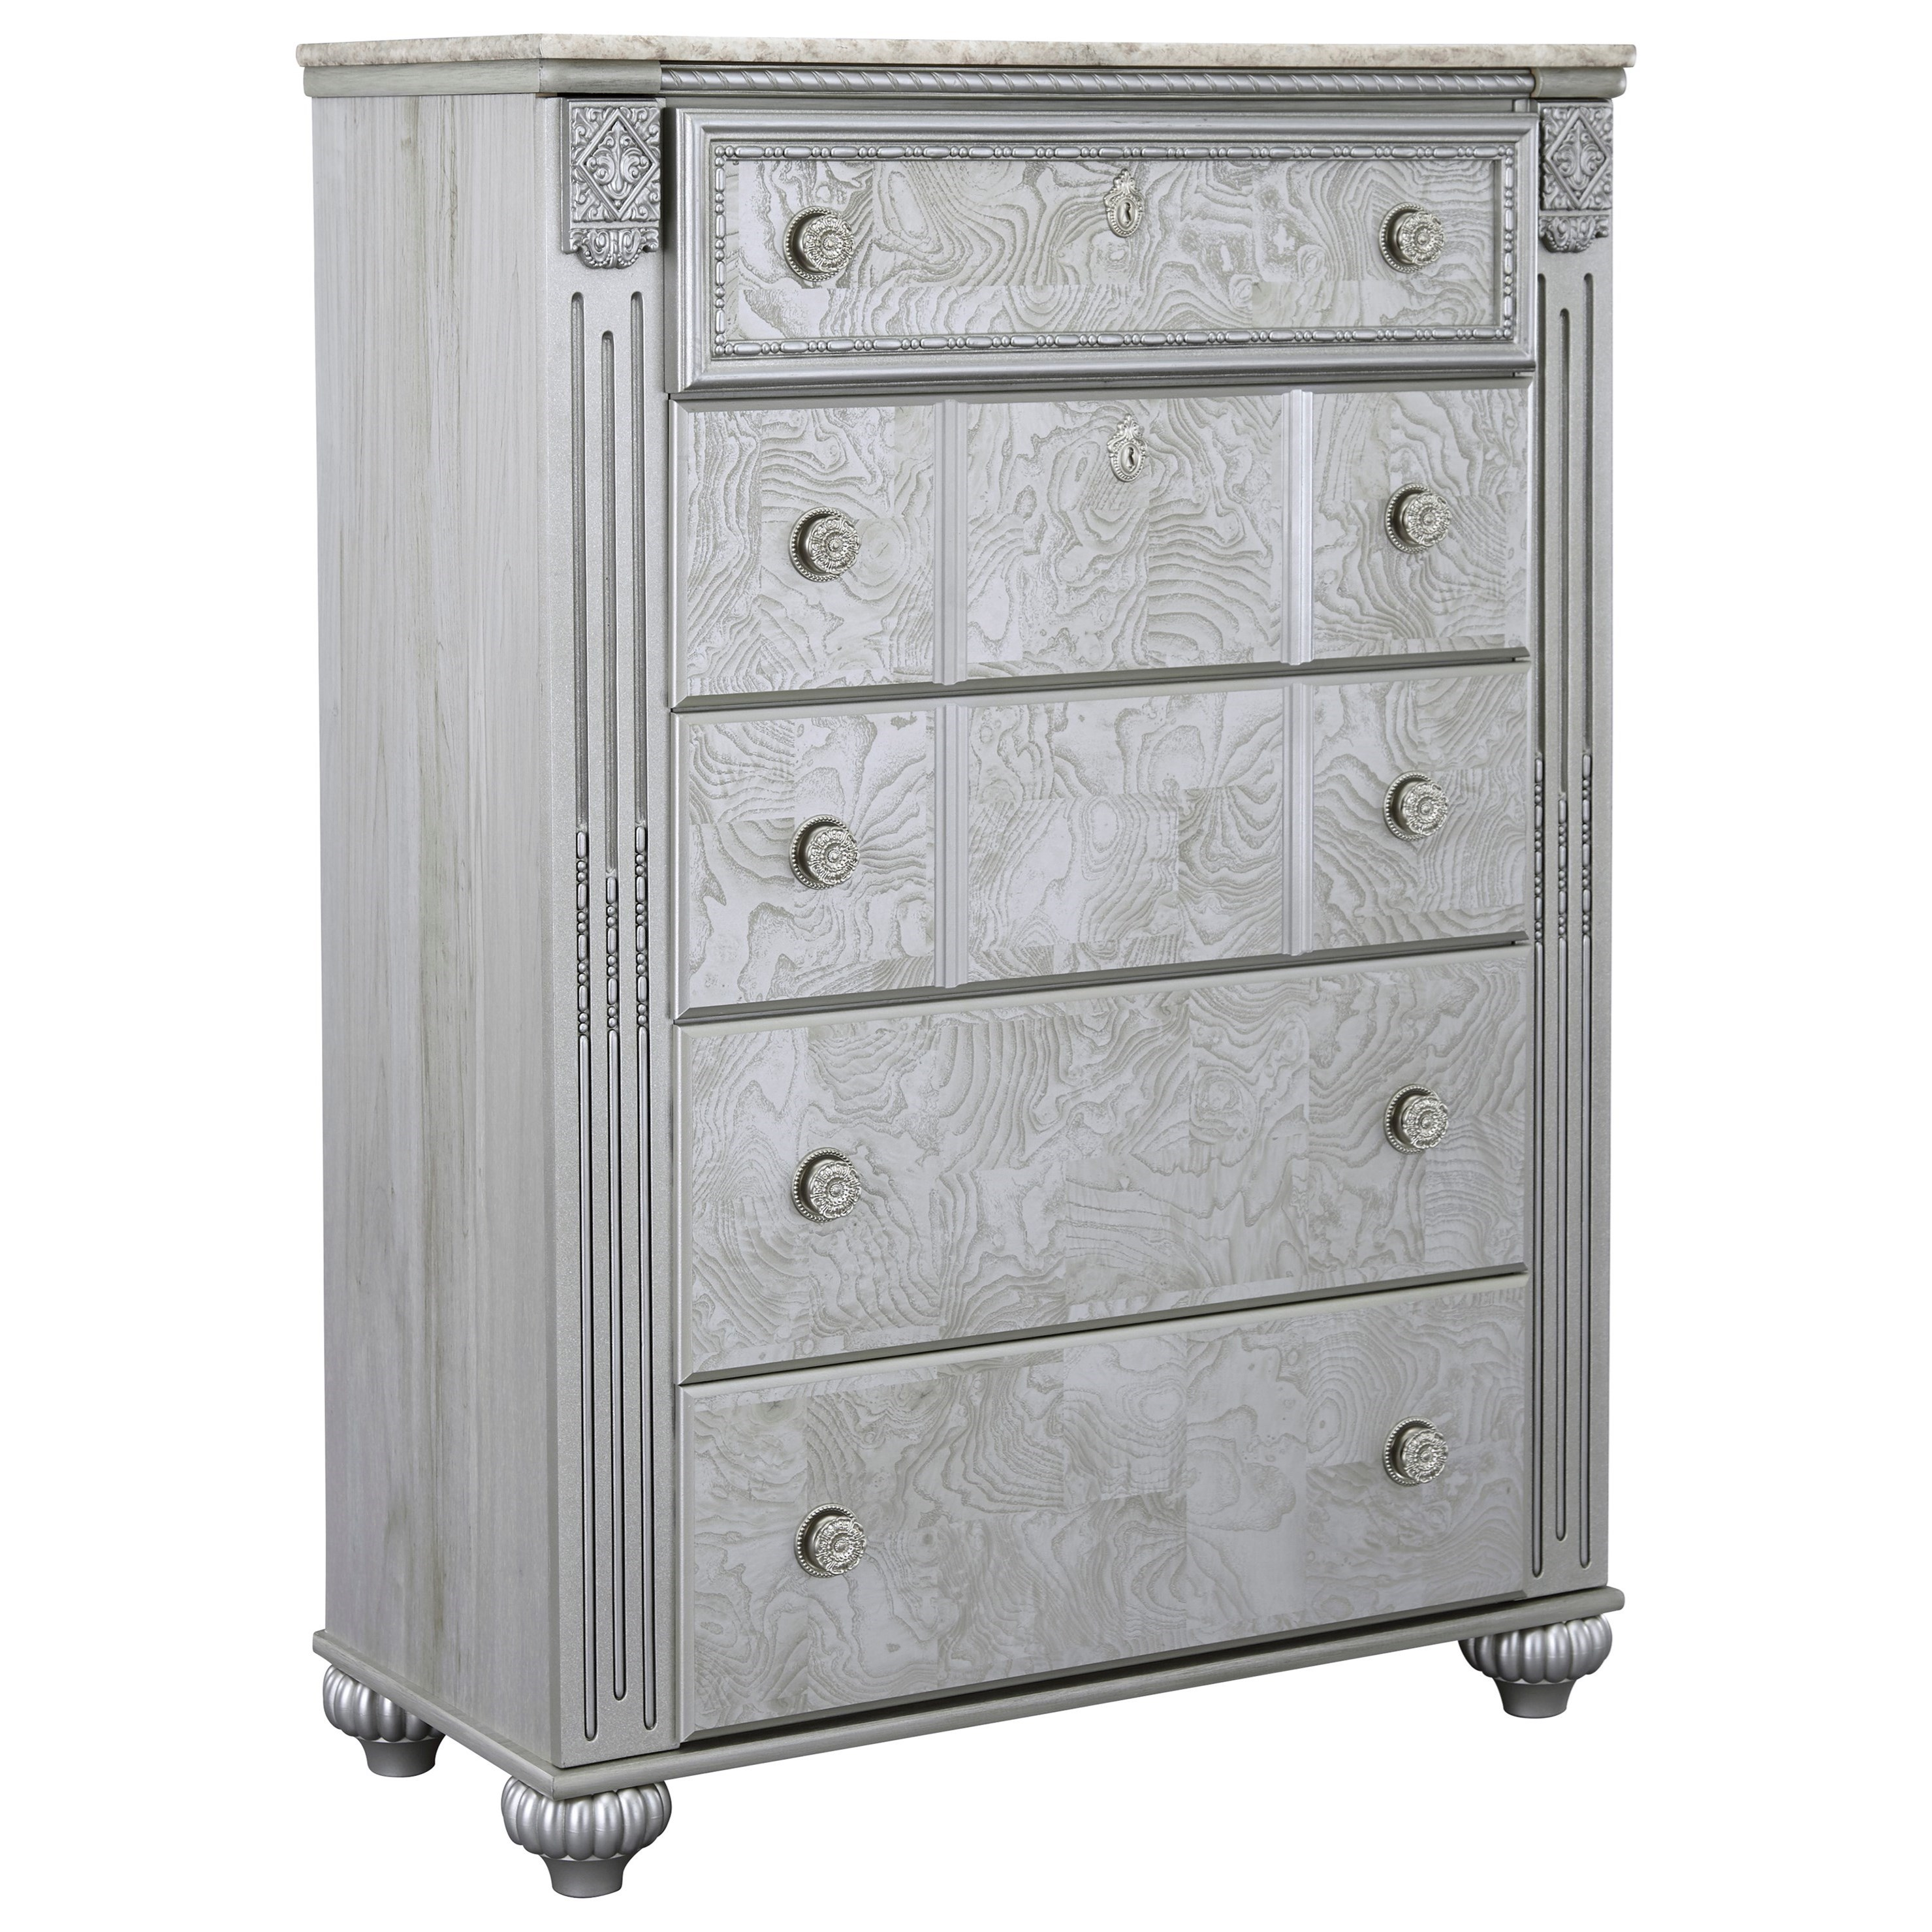 Signature Design by Ashley Zolena Glam 5 Drawer Chest - Item Number: B357-46